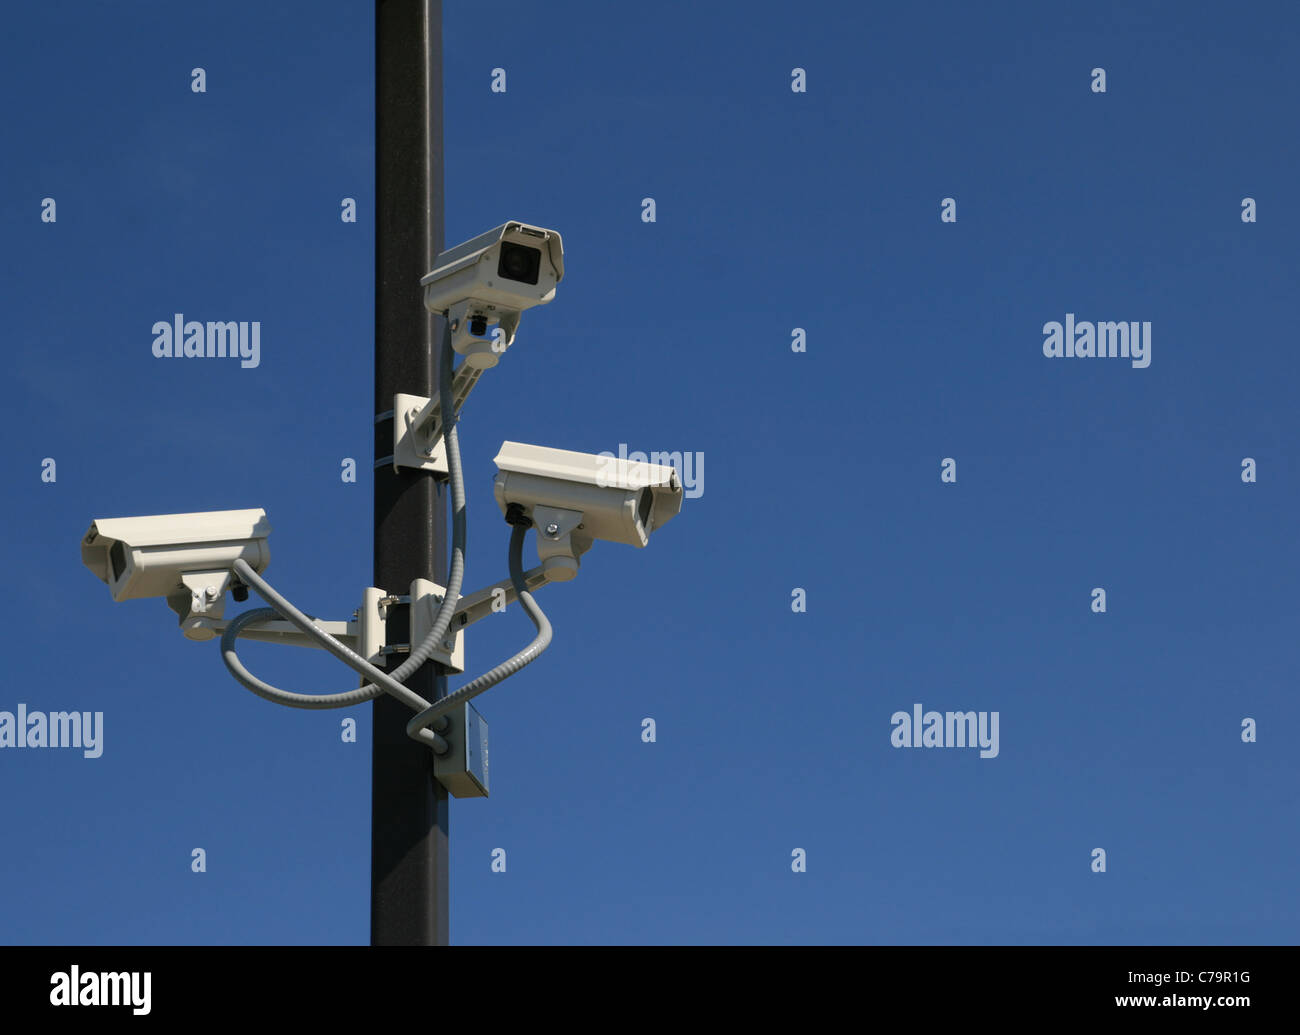 three security video cameras mounted on a pole with a blue sky background and copy space - Stock Image